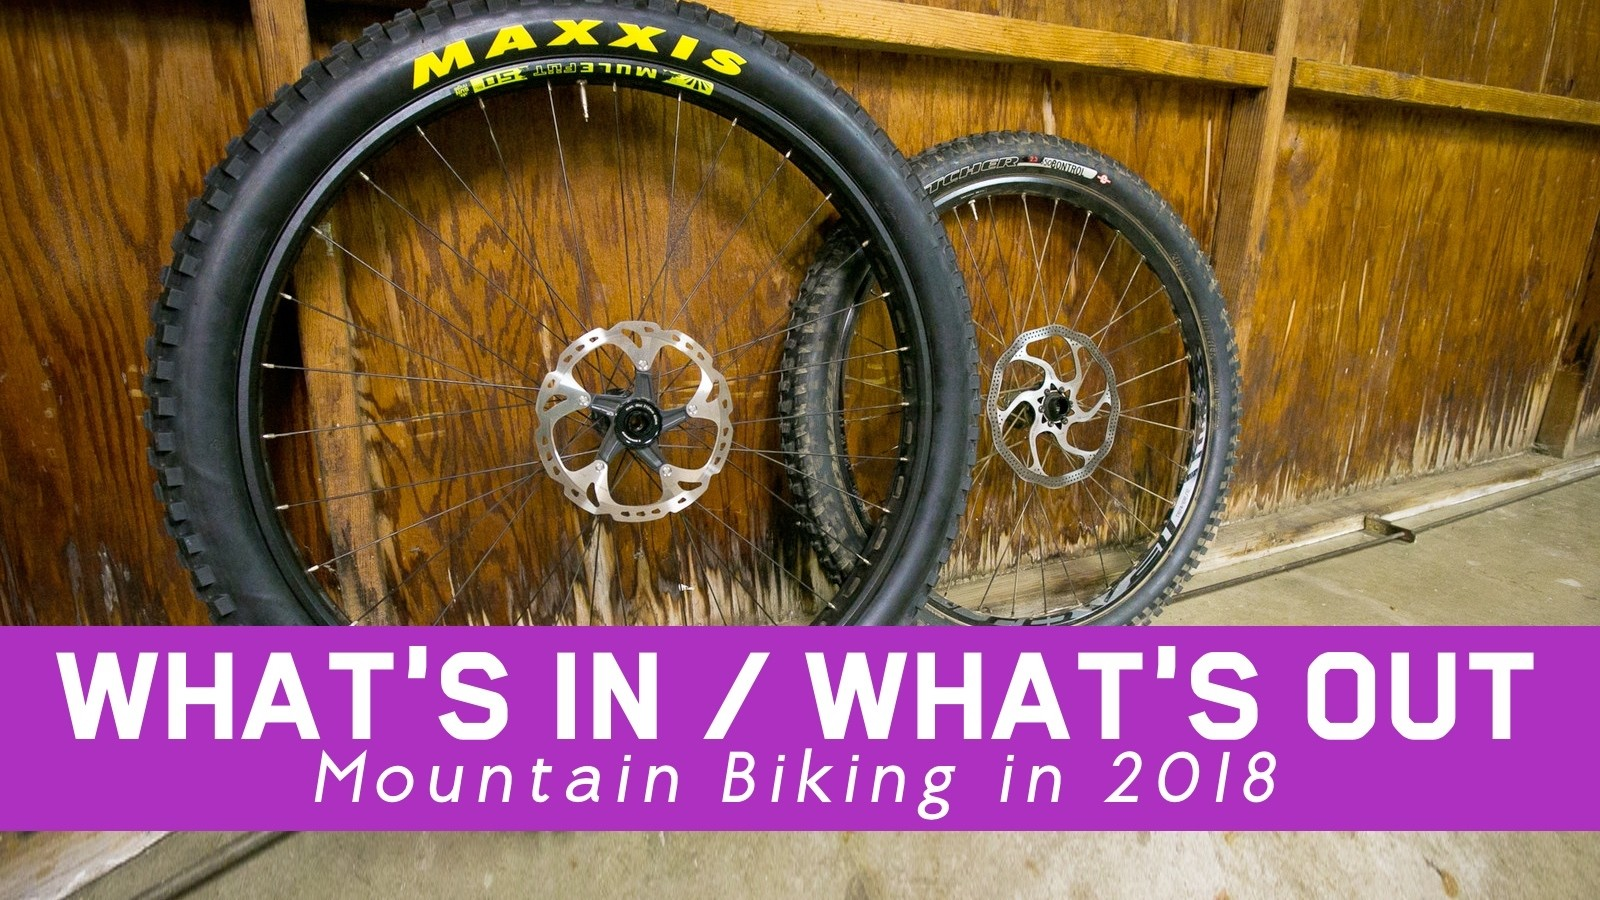 What's In / What's Out - Mountain Biking, 2018